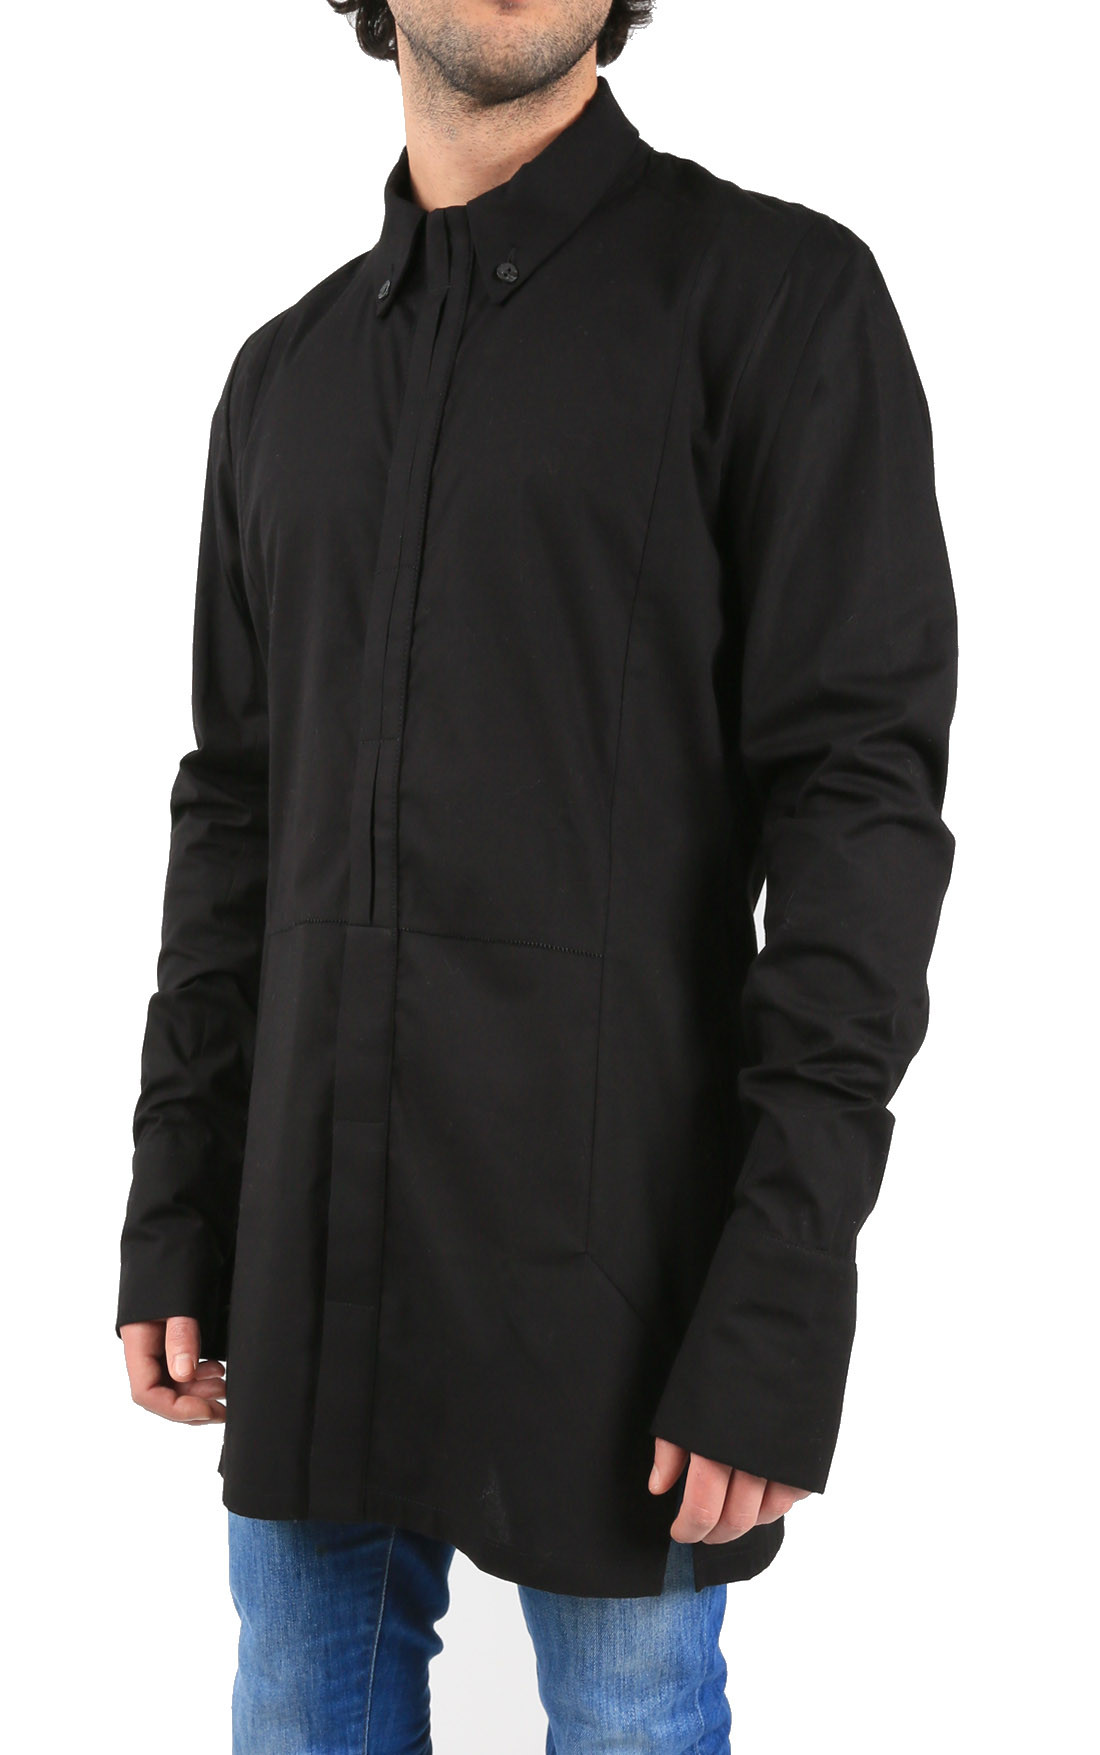 PREACH - Kepler Long Black Shirt (09301516-102-00)